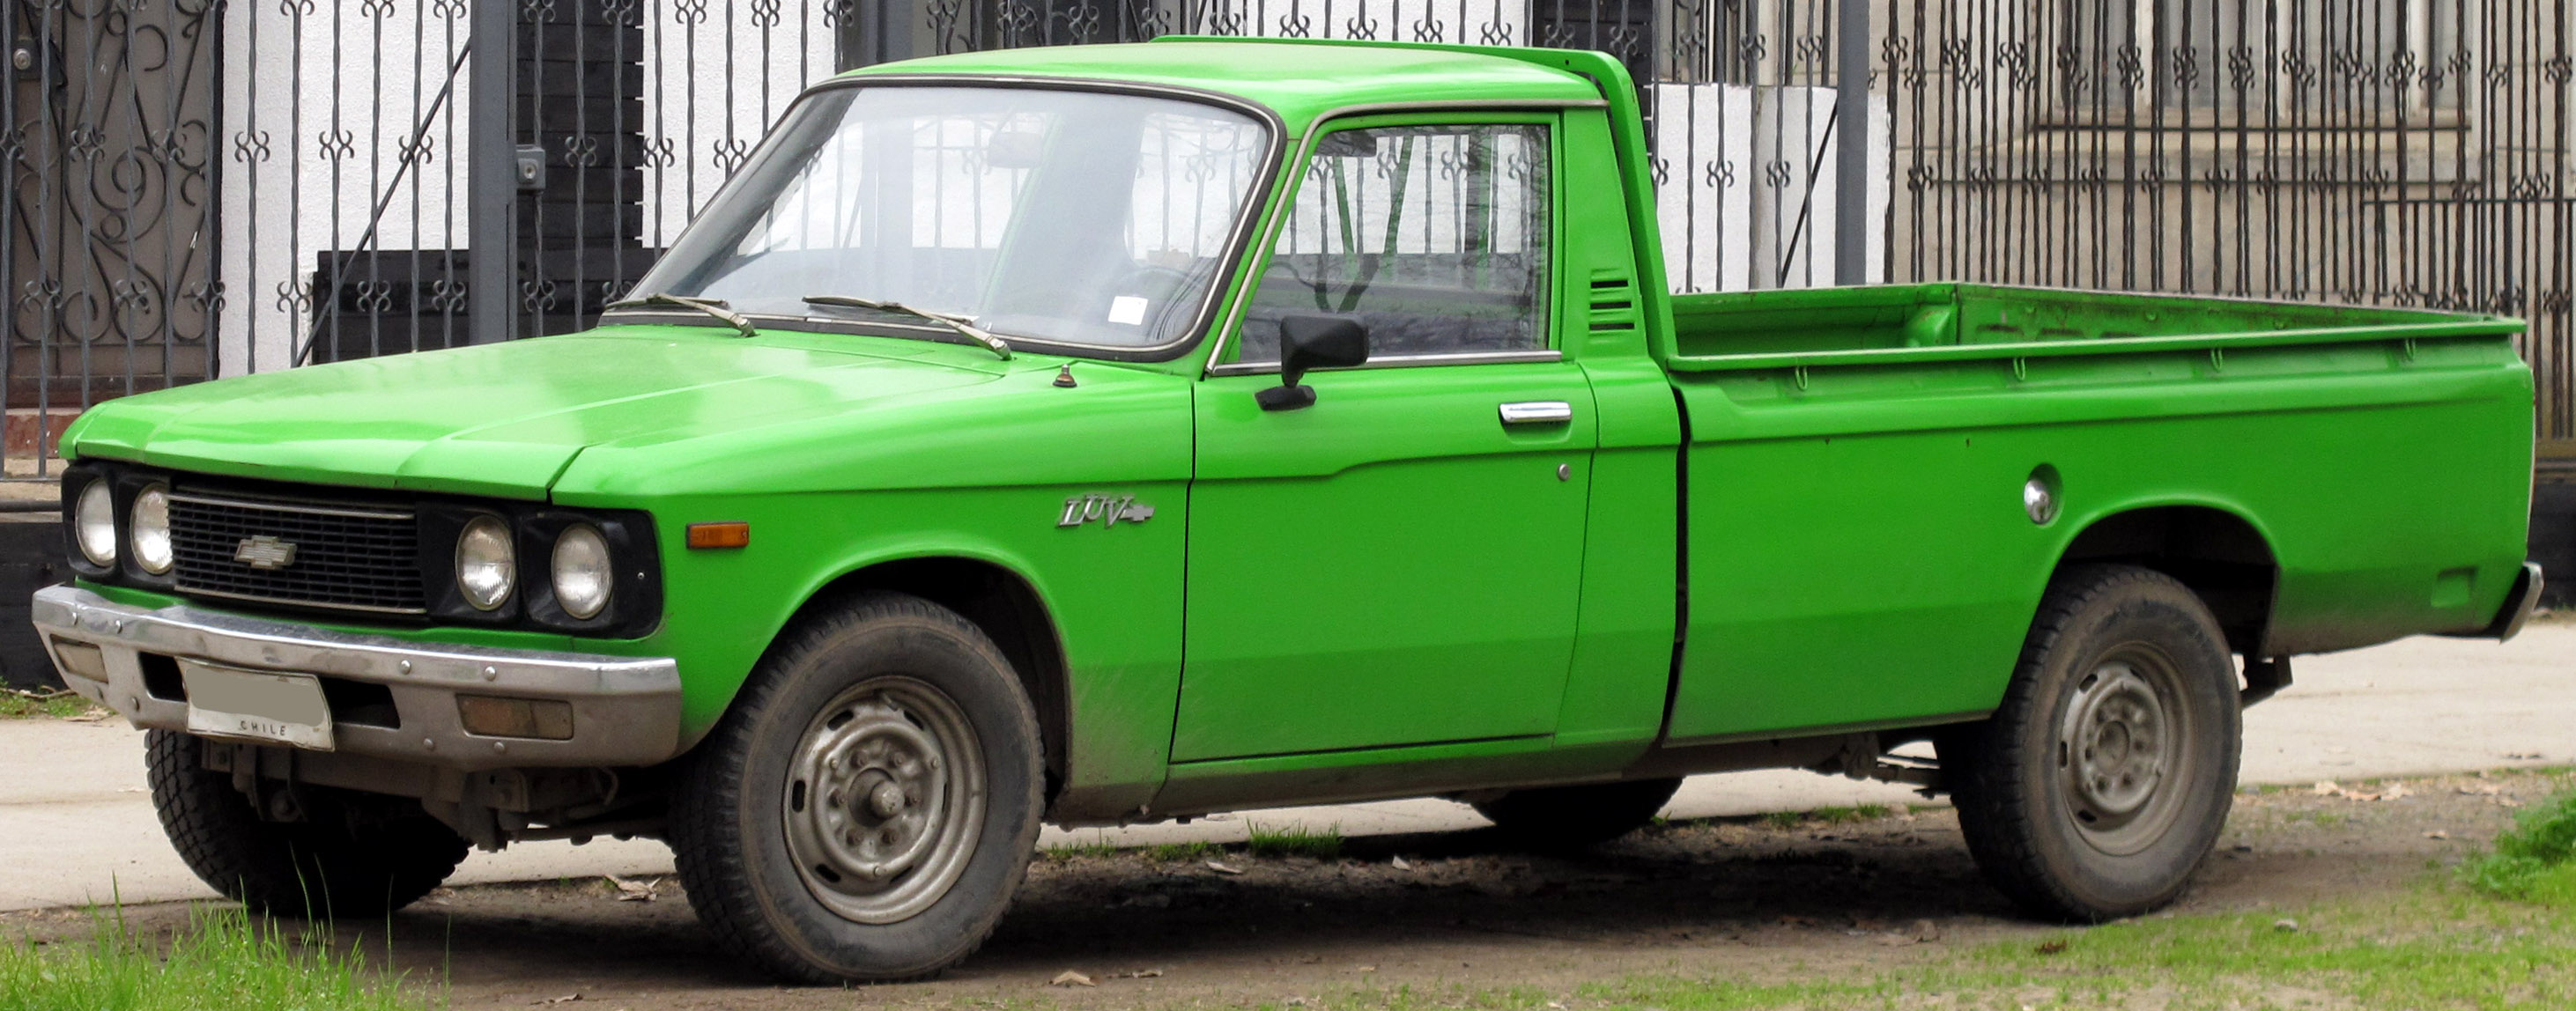 Chevrolet Luv 1600 1978 pickup truck from wiki commons